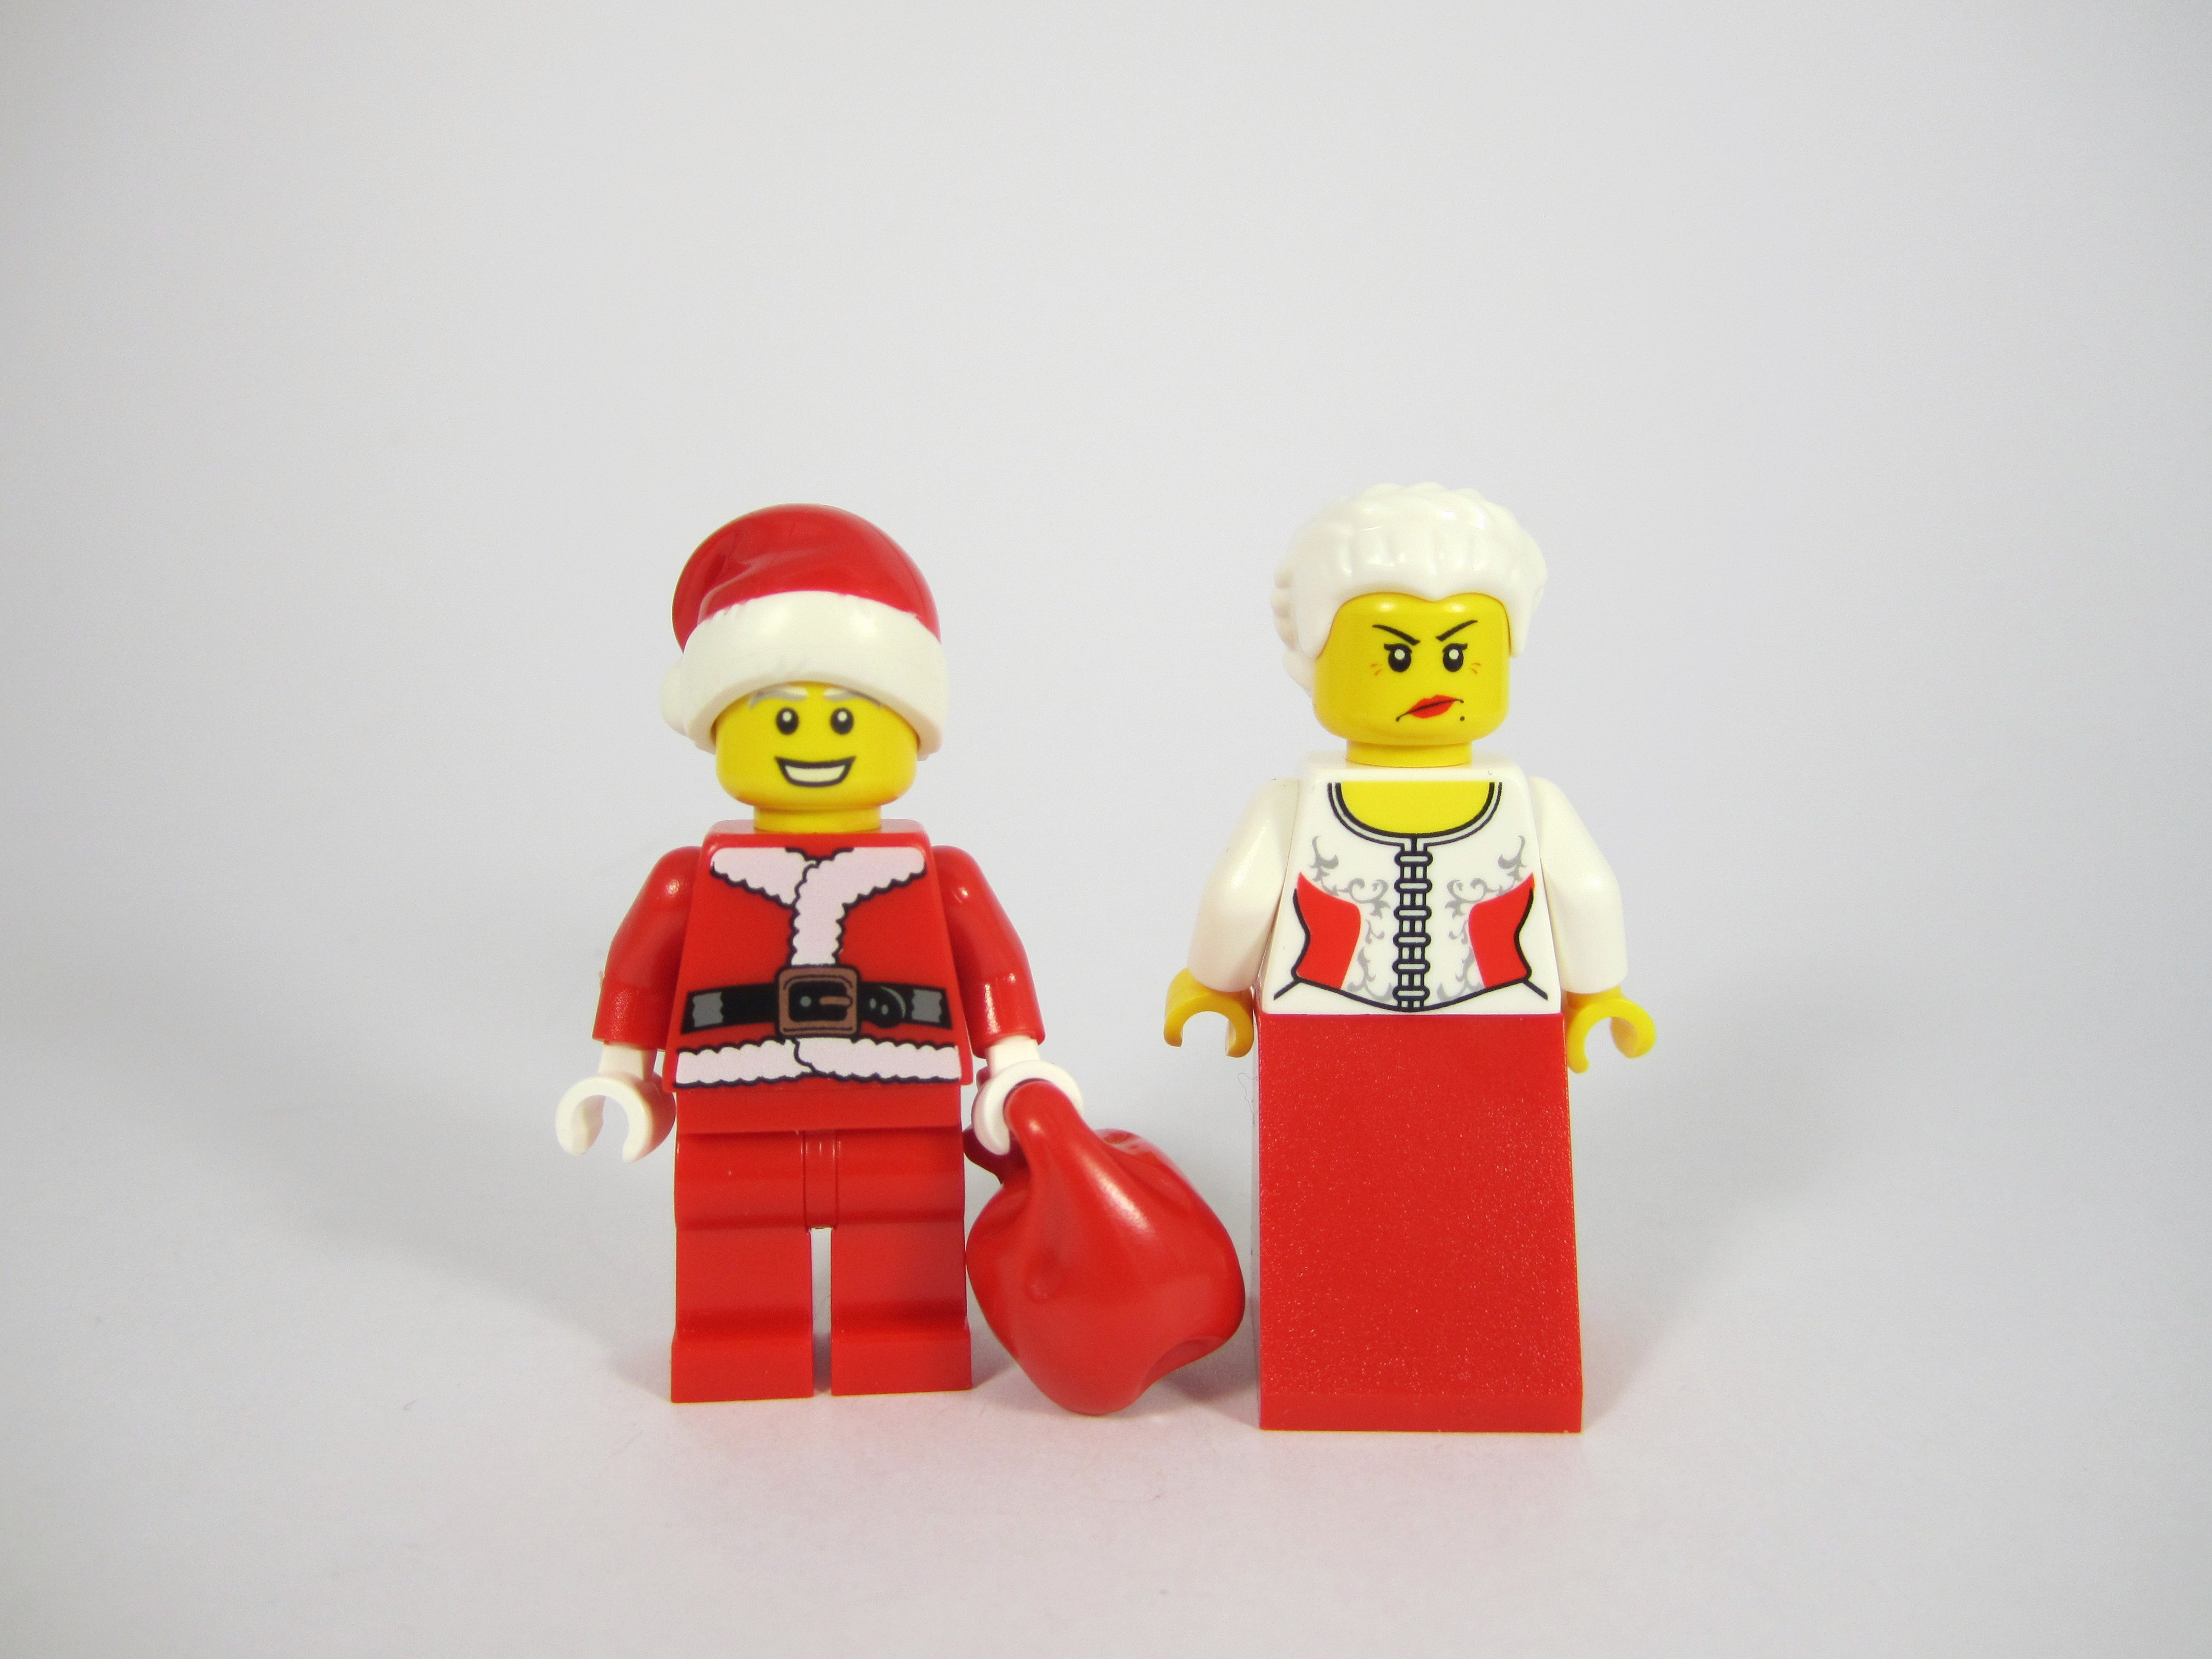 LEGO 10245 Santa's Workshop Mr and Mrs Clause alternate faces